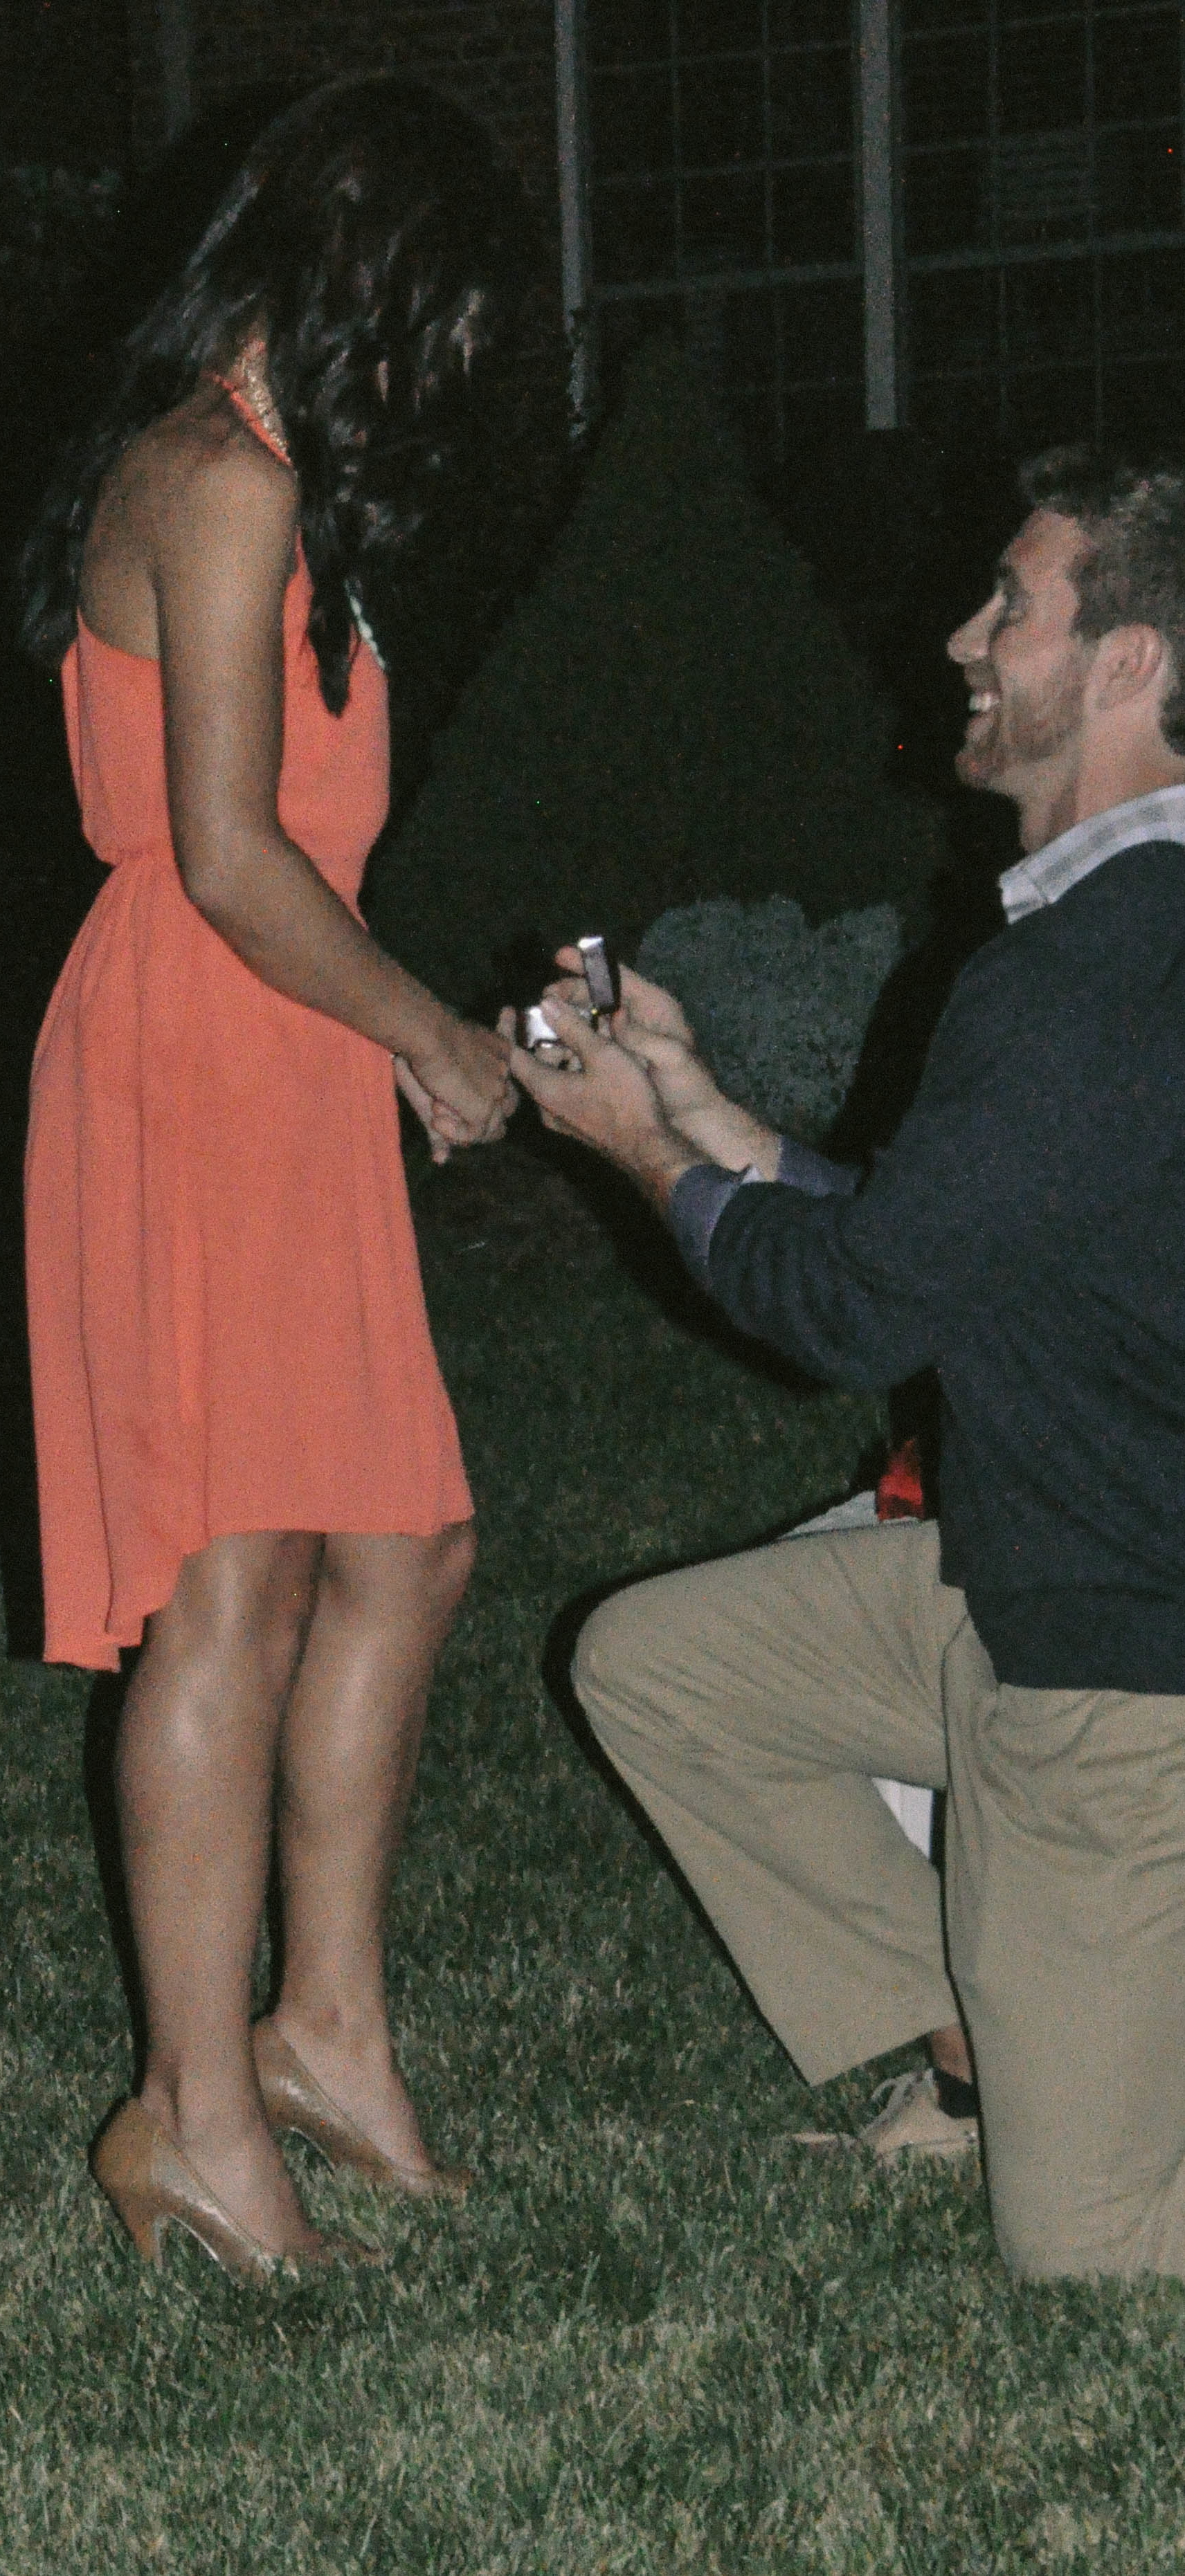 Image 29 of This Scavenger Hunt Proposal is Unbelievable